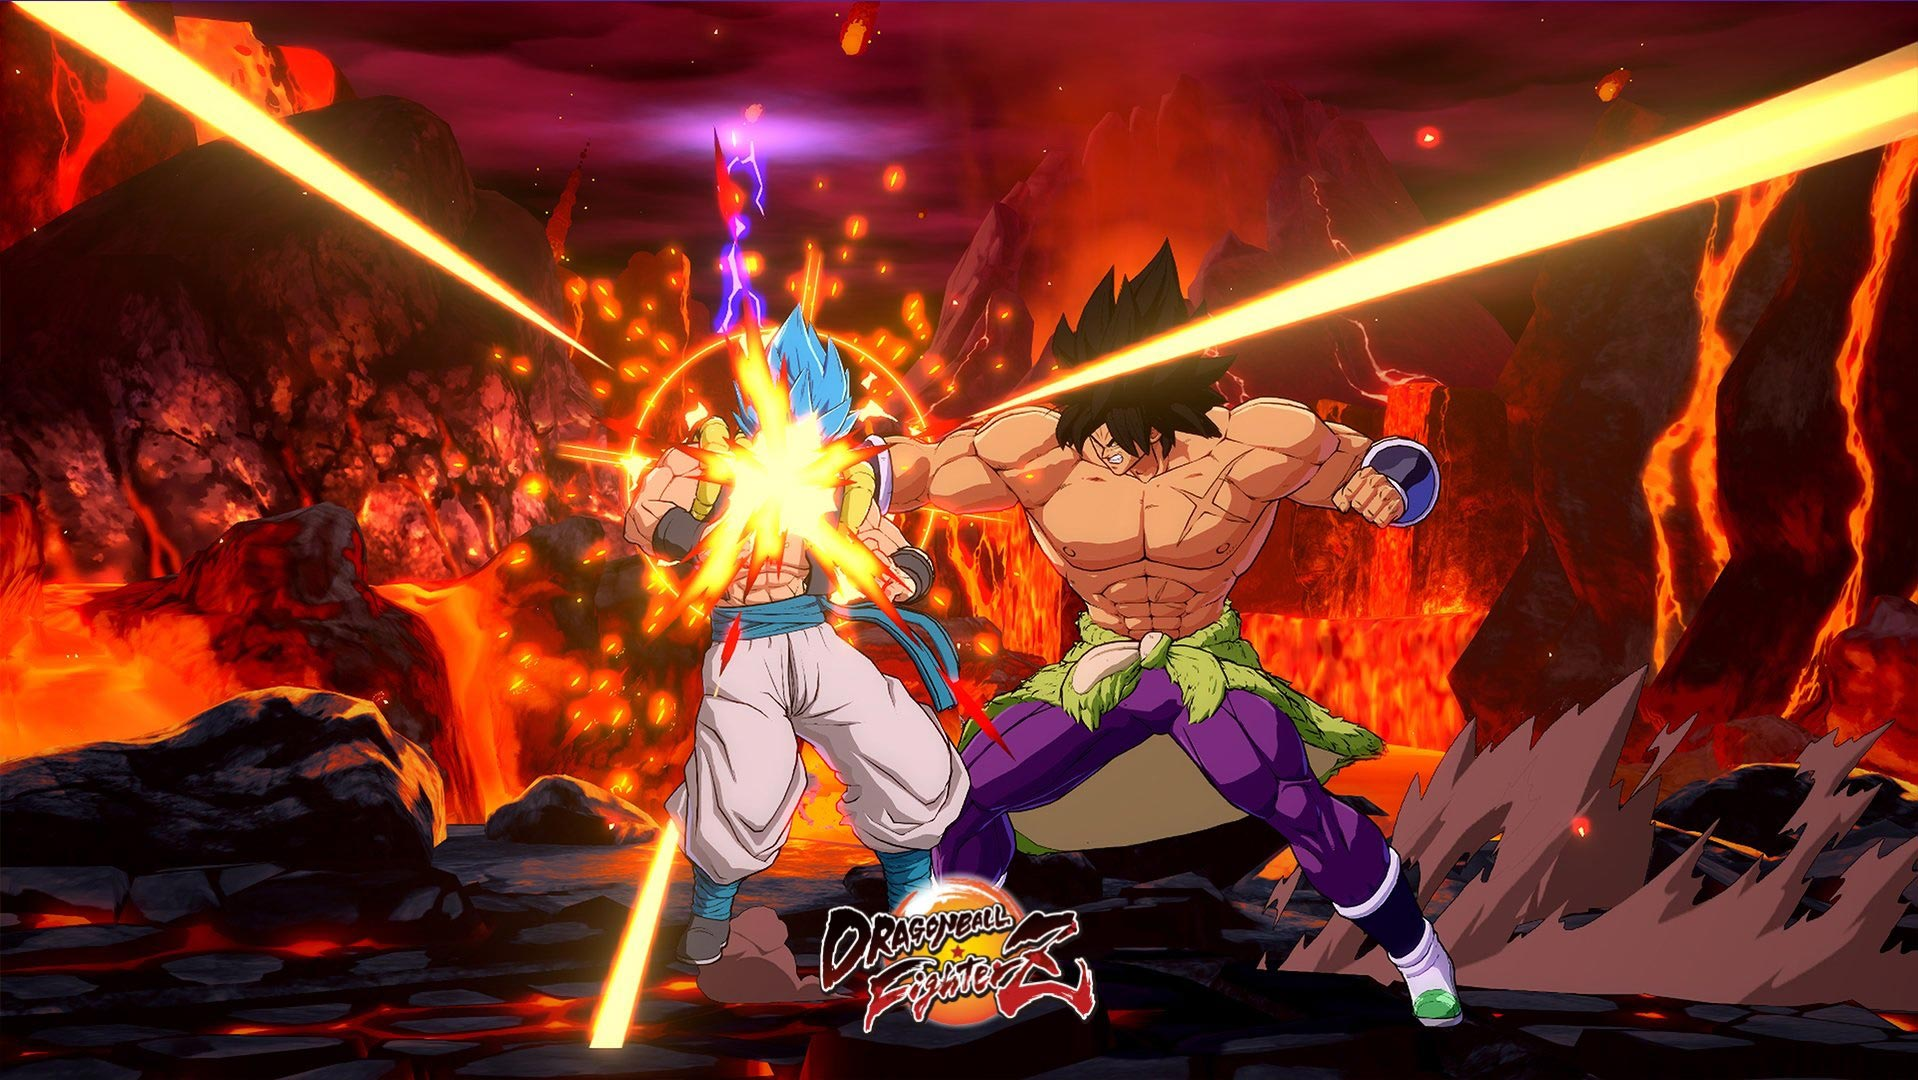 New Super Broly screenshots in Dragon Ball FighterZ 1 out of 4 image gallery